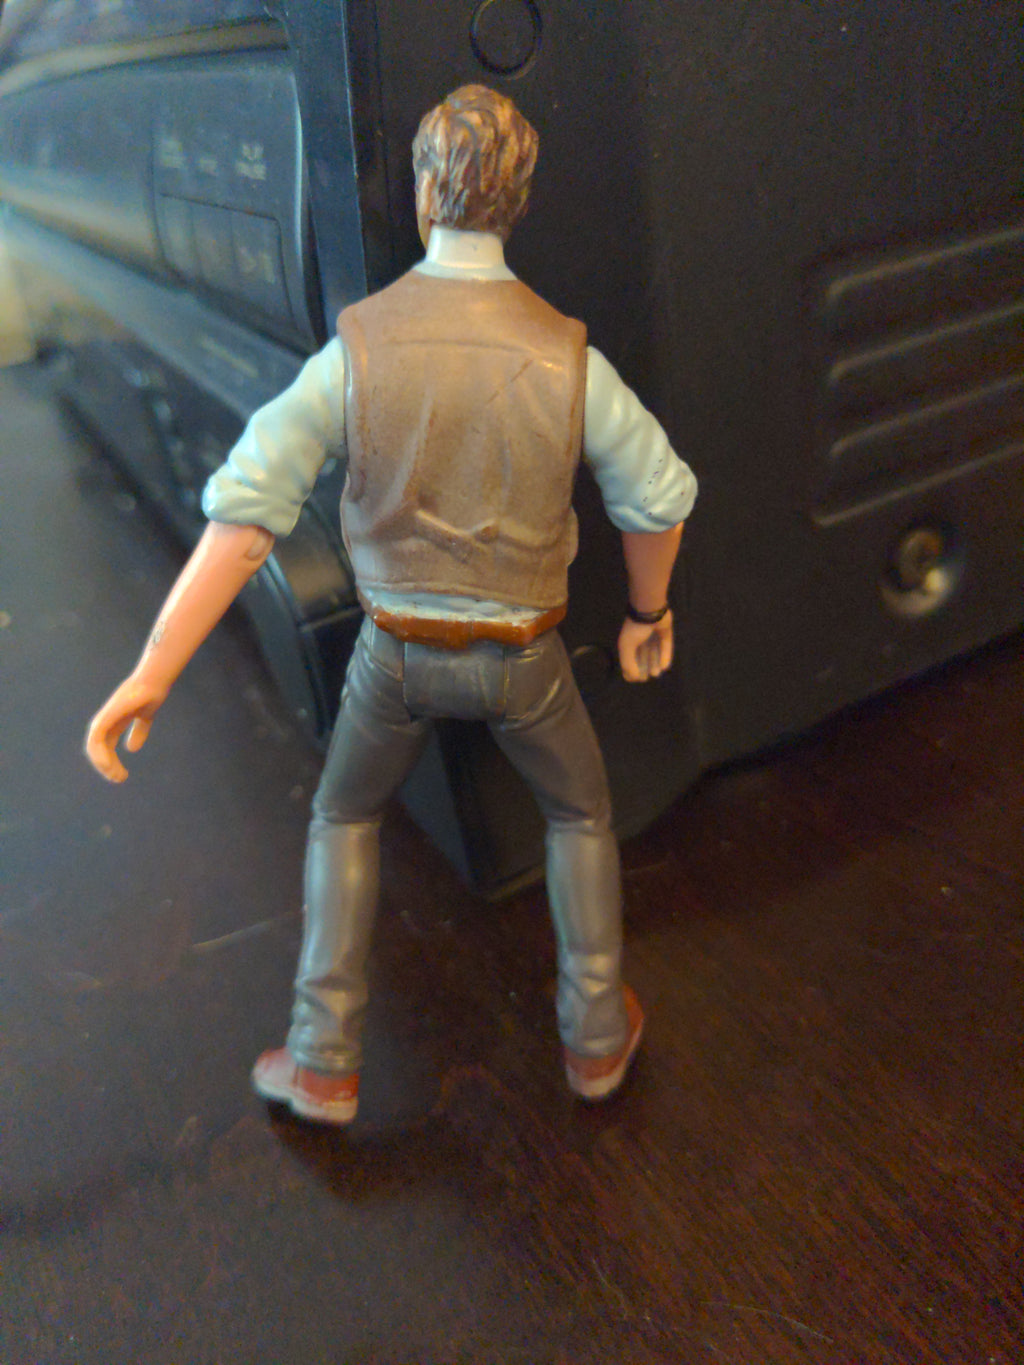 2015 Hasbro Amblin Jurassic Park Chris Pratt Owen Action Figure